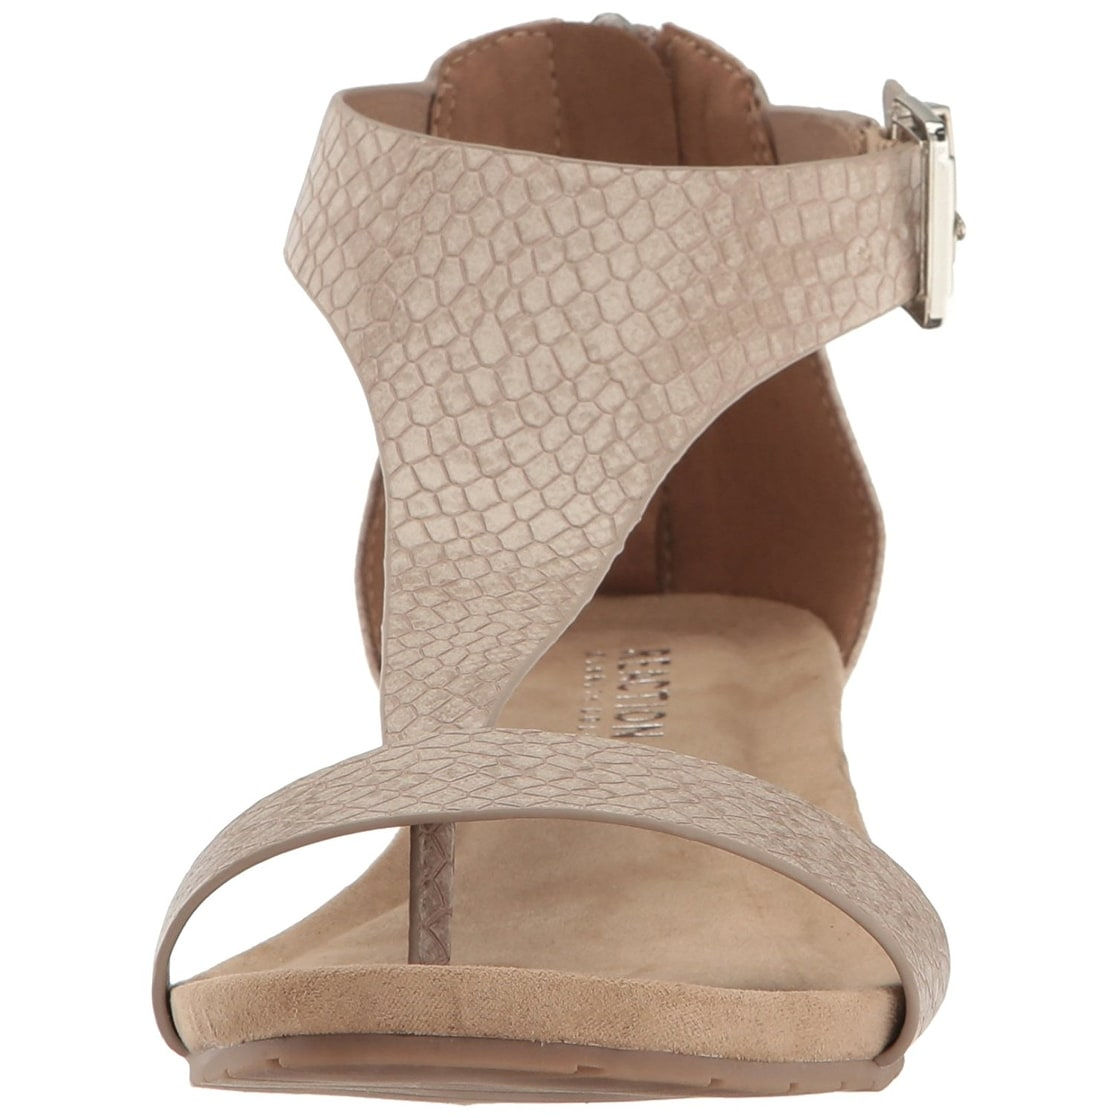 d65cfe4bd8f Shop Kenneth Cole REACTION Women s Great Gal Wedge Sandal - Free Shipping  On Orders Over  45 - Overstock - 17637291